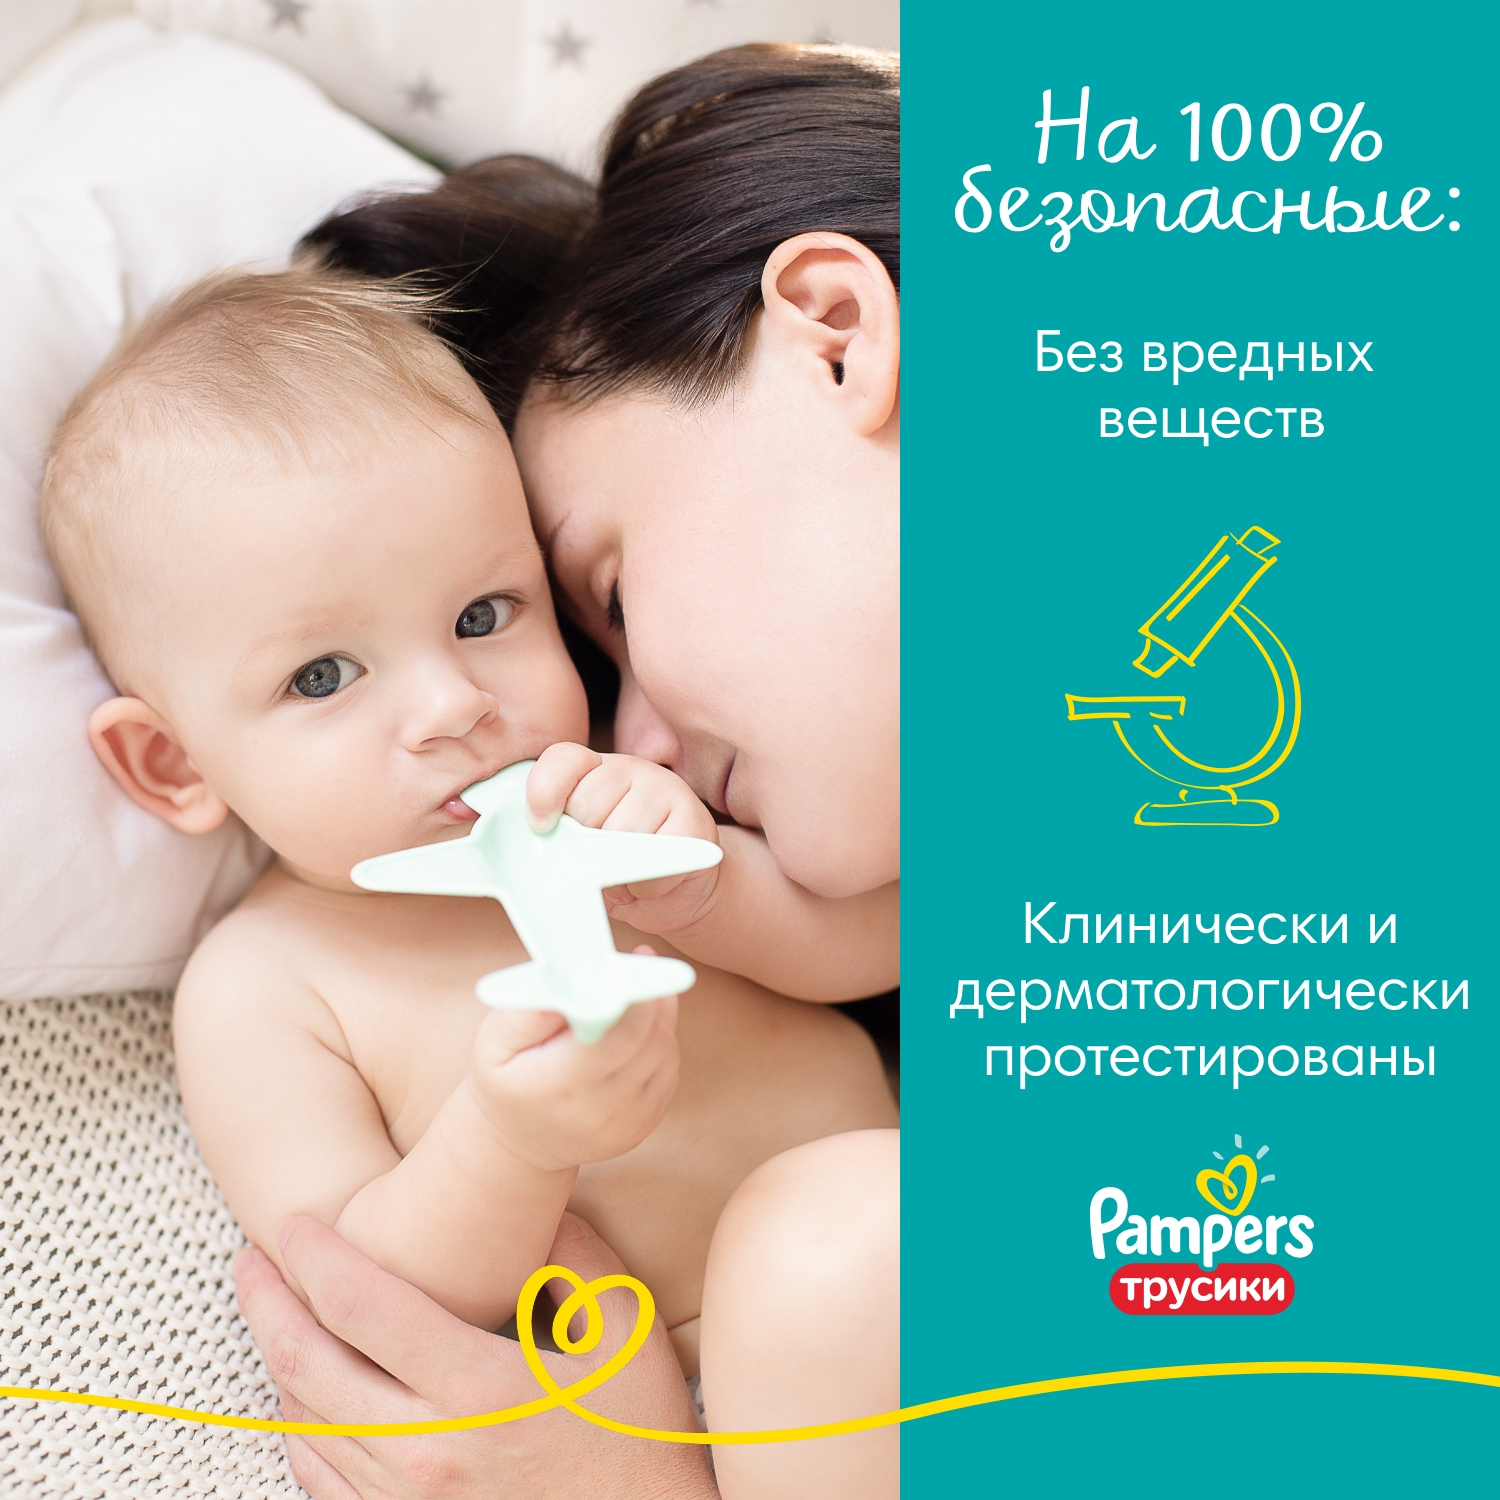 Трусики Pampers Pants 6 (15+кг), 132 шт